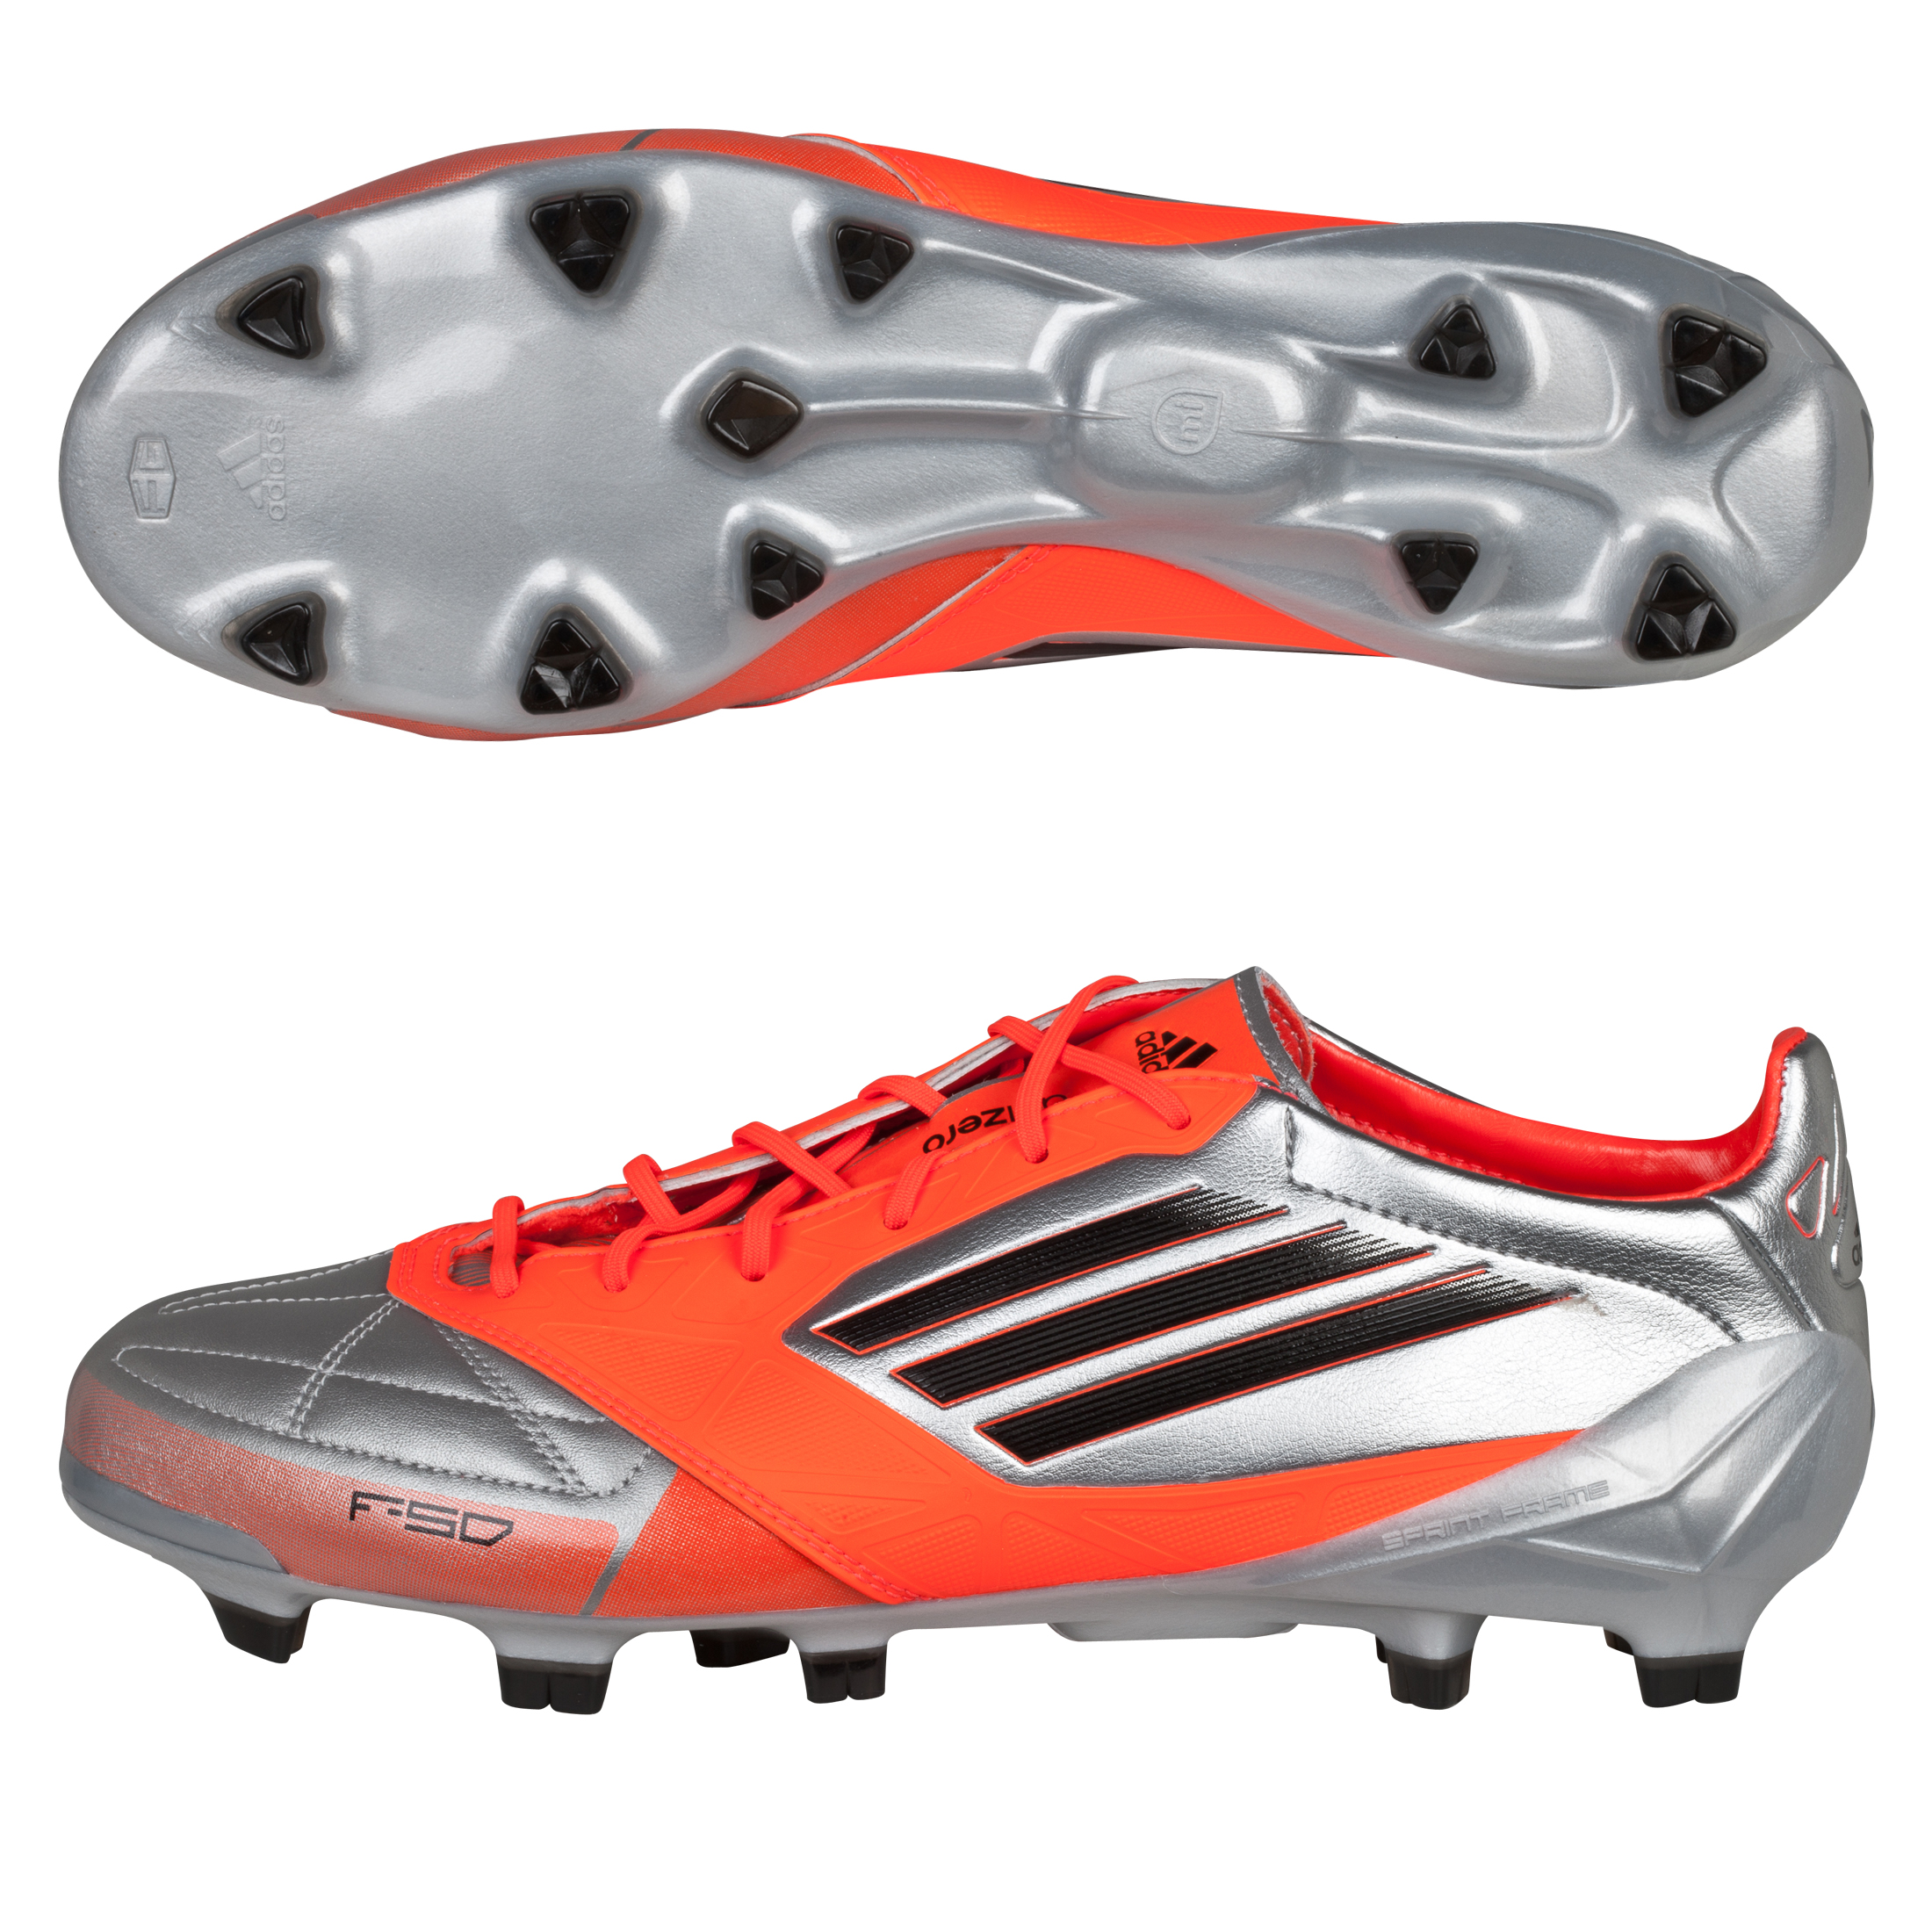 Adidas F50 Adizero TRX Firm Ground Leather Football Boots - Metallic Silver/Black/Infrared